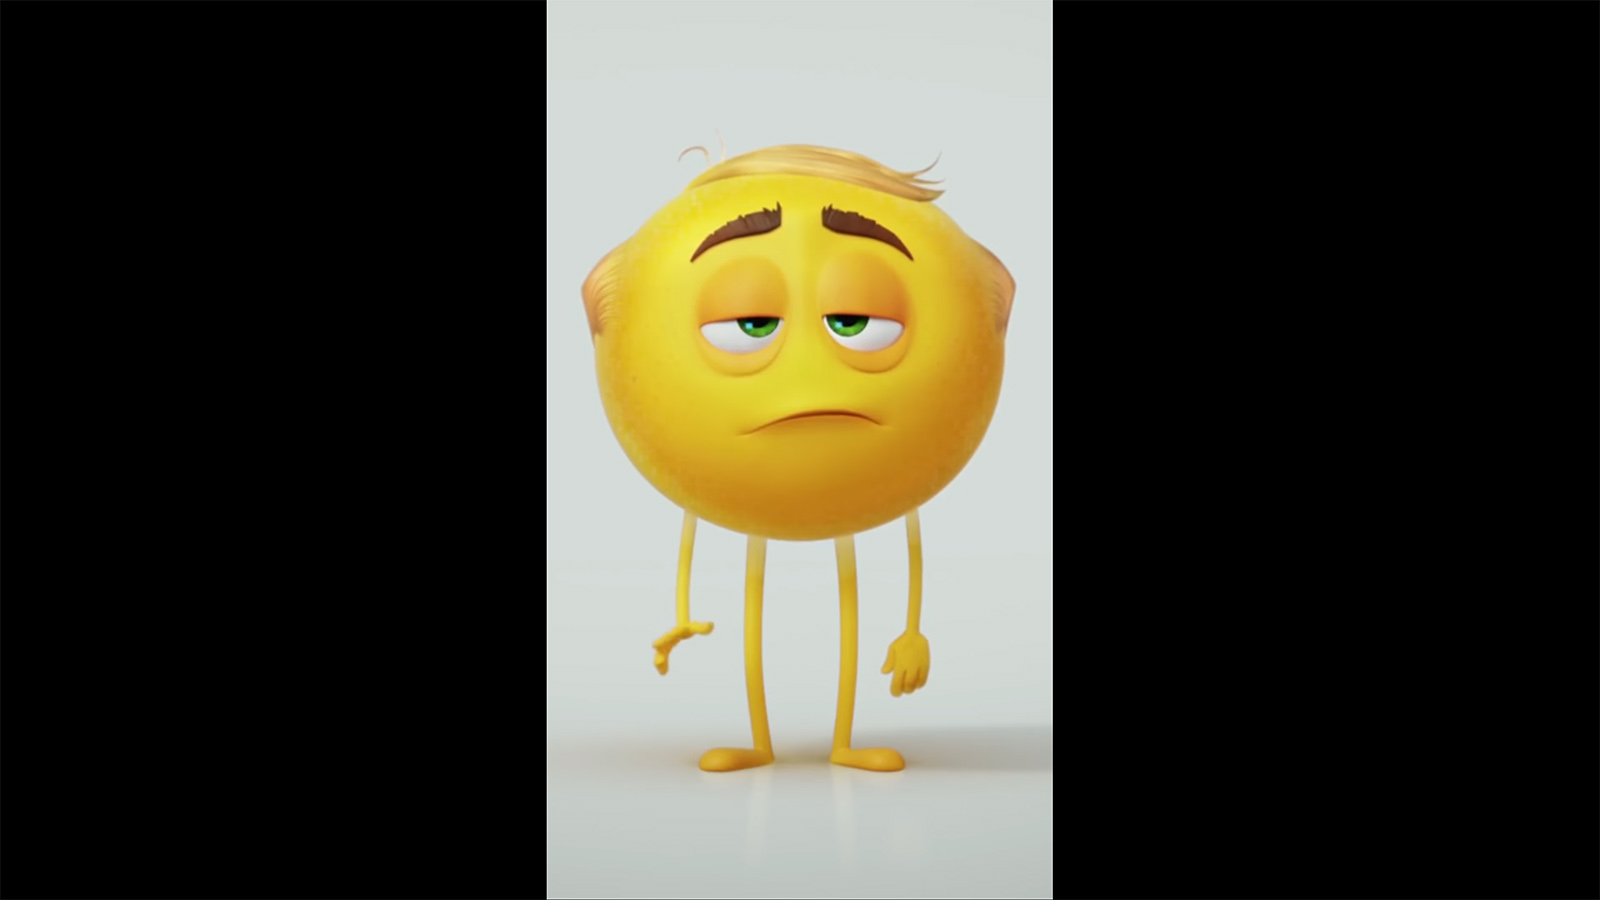 The Emoji Movie 2017 Wallpapers 59 Wallpapers HD 1600x900